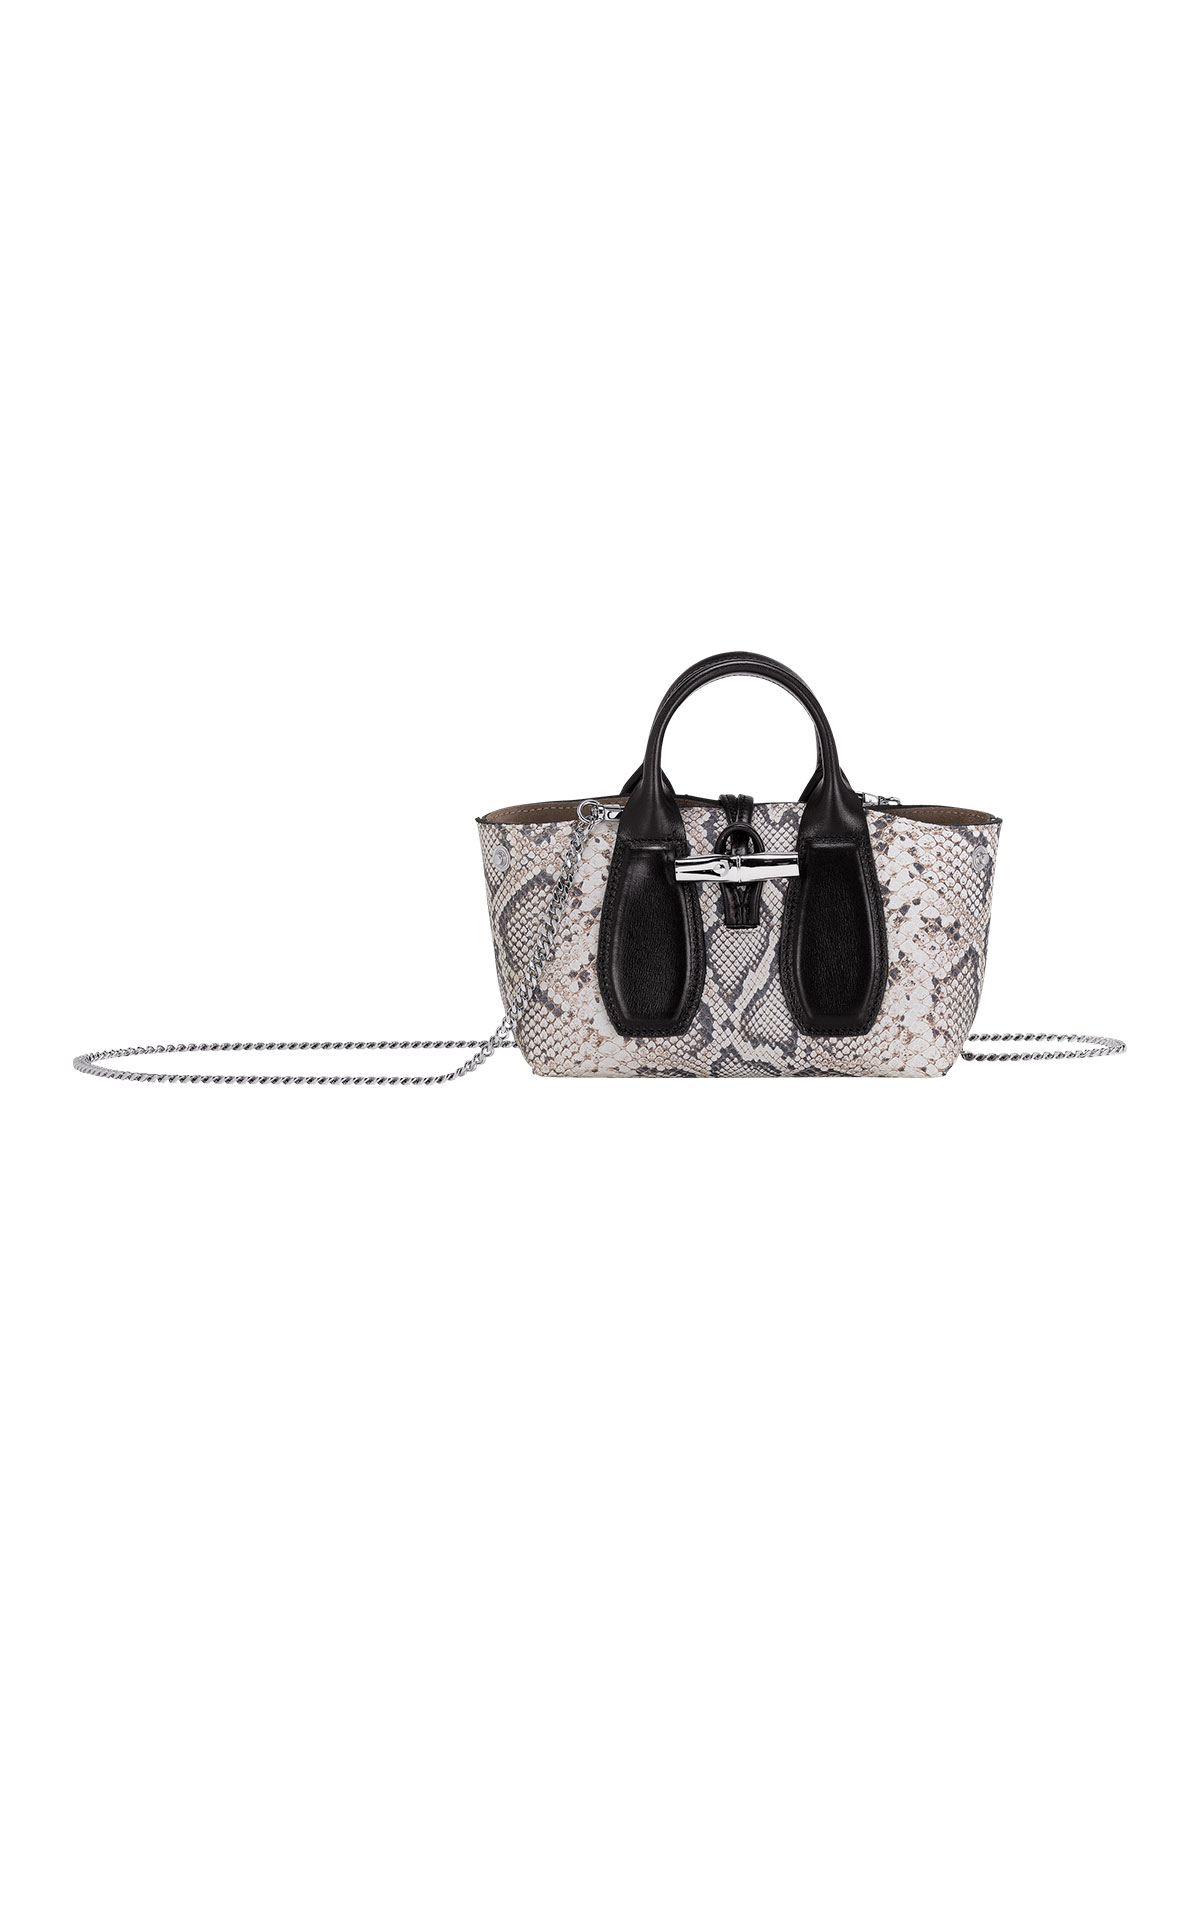 Roseau Python mini bag Longchamp